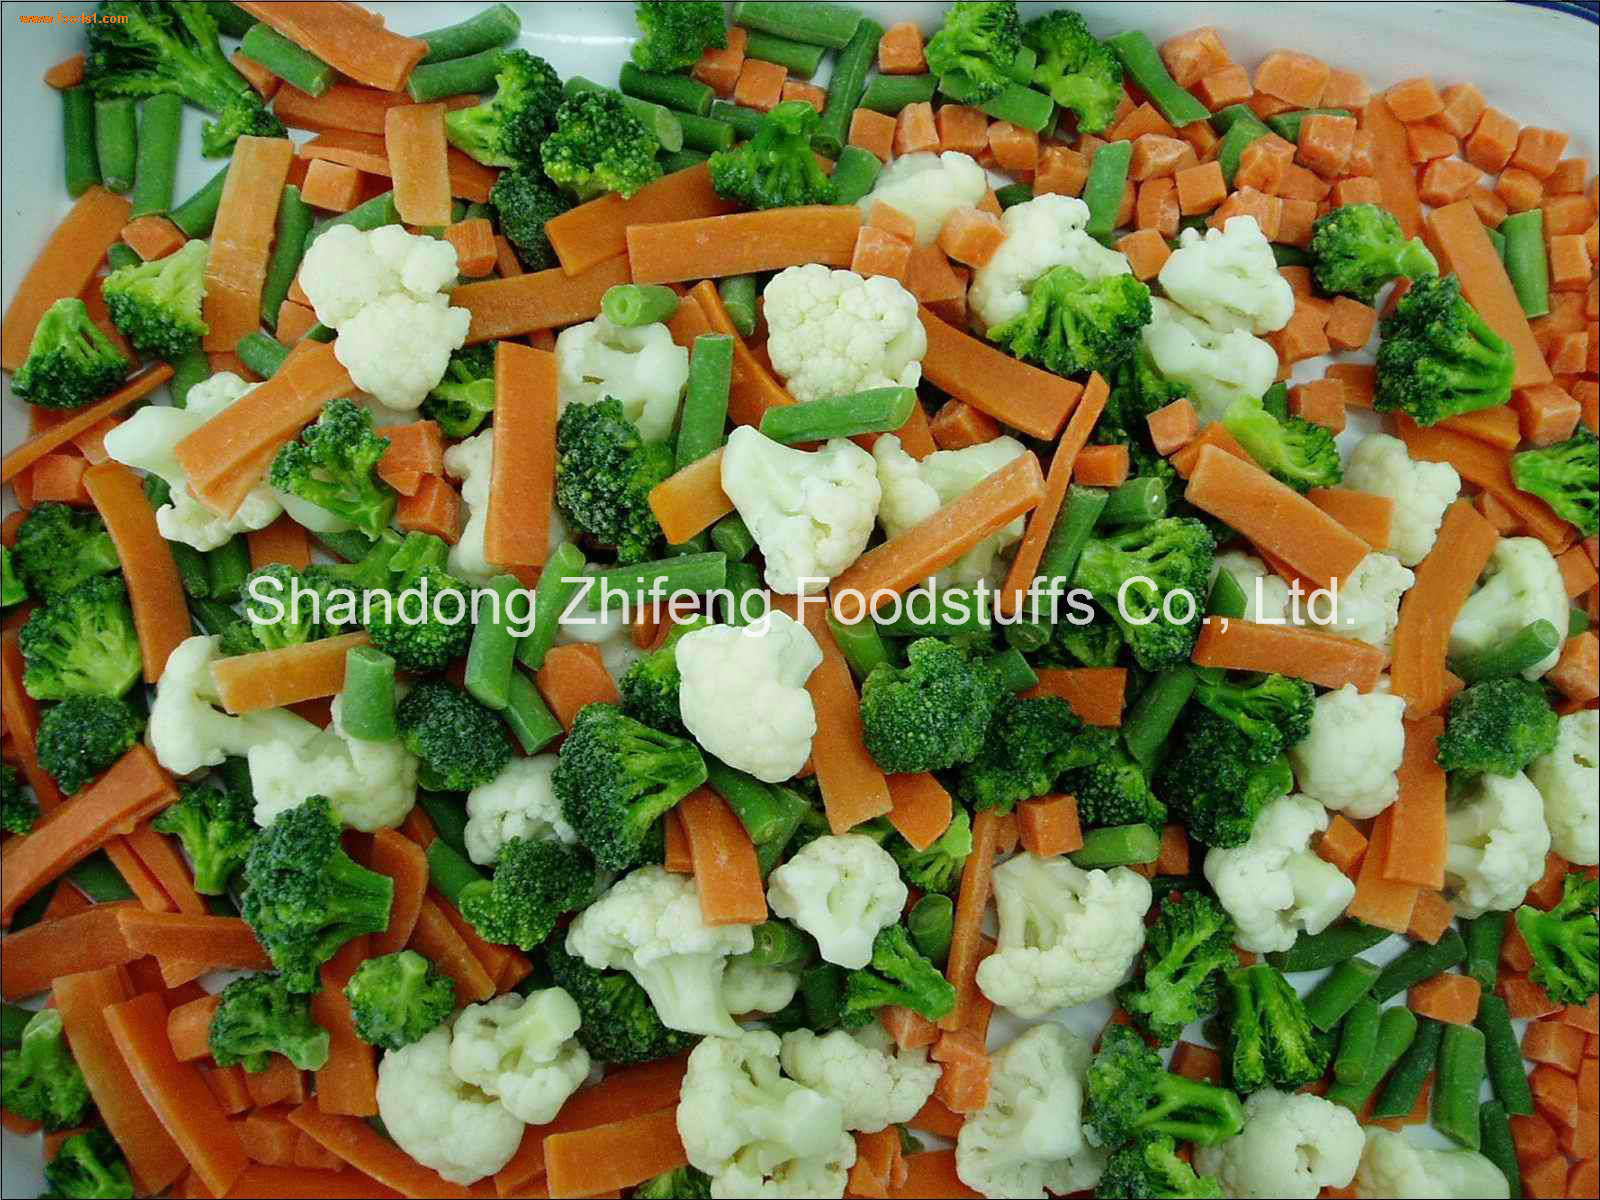 frozen vegetables china - HD1600×1200